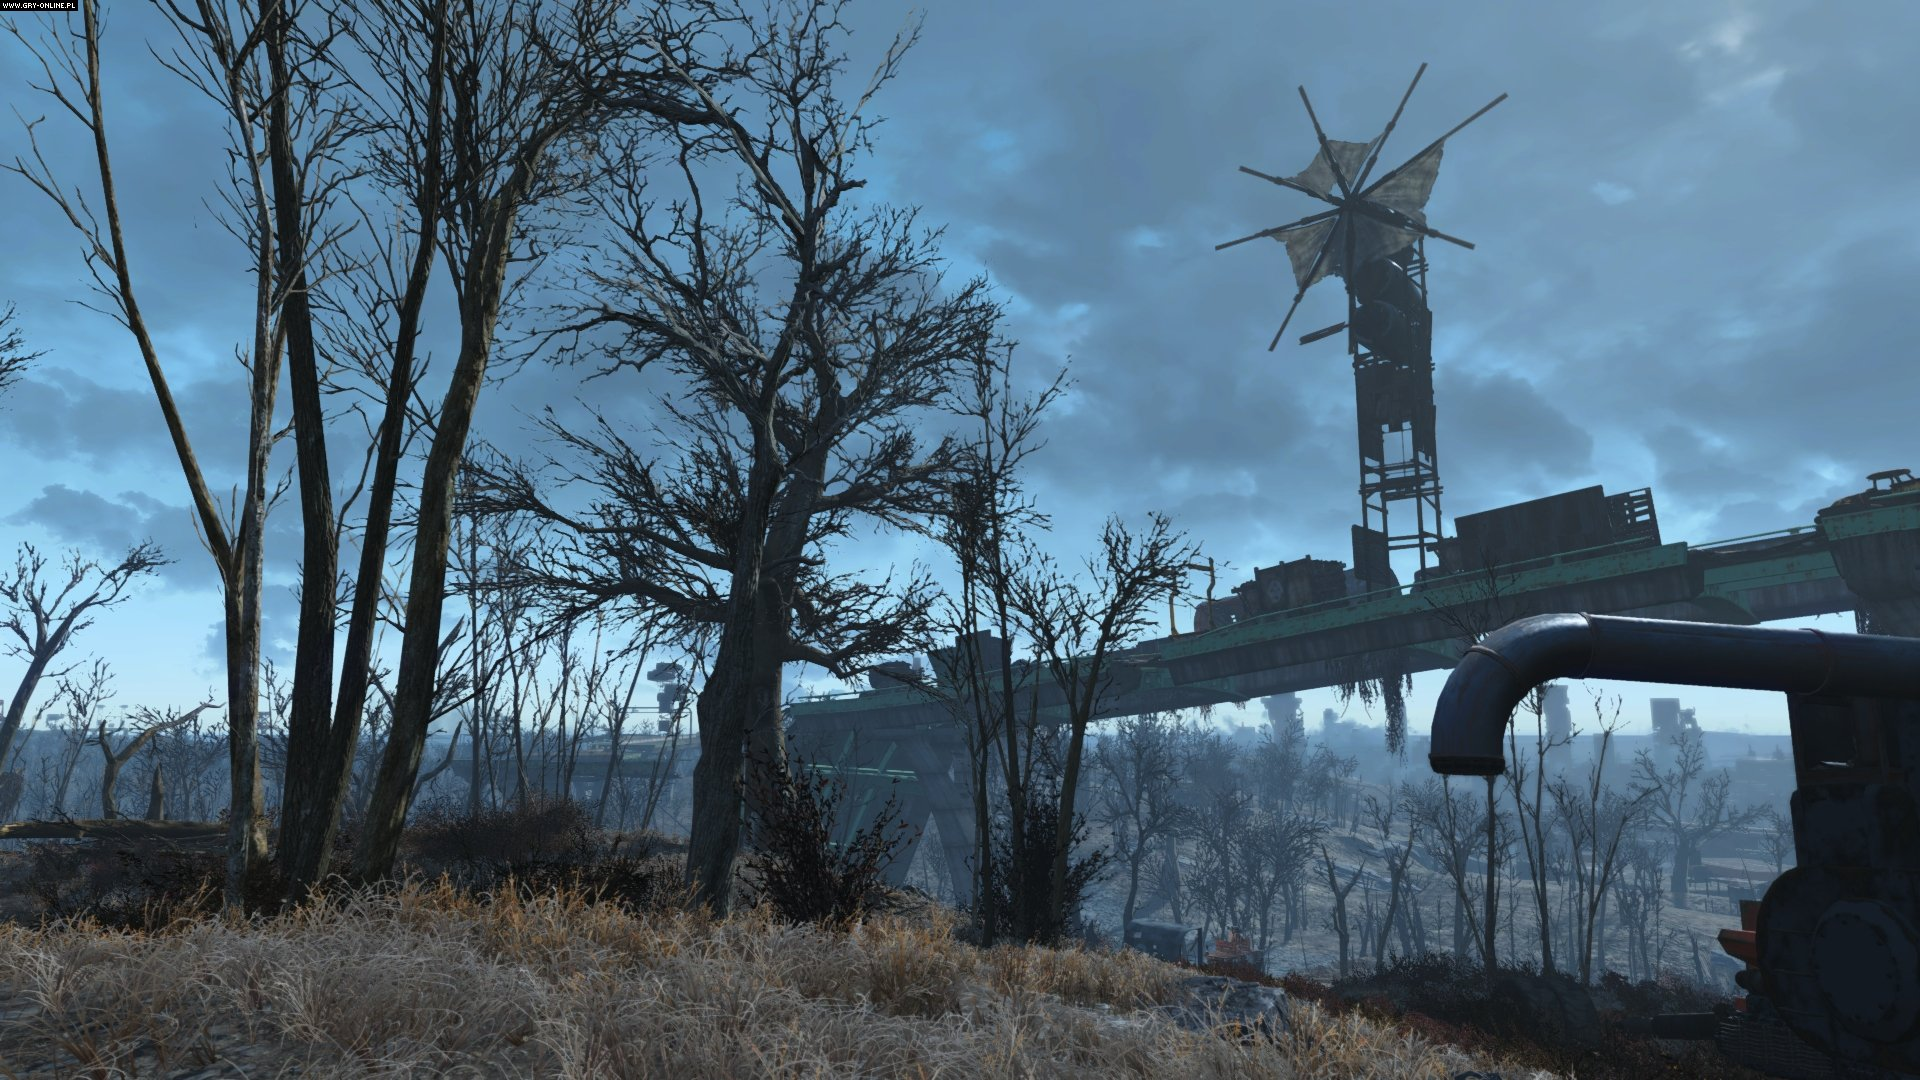 Fallout 4 PC Games Image 20/109, Bethesda Softworks